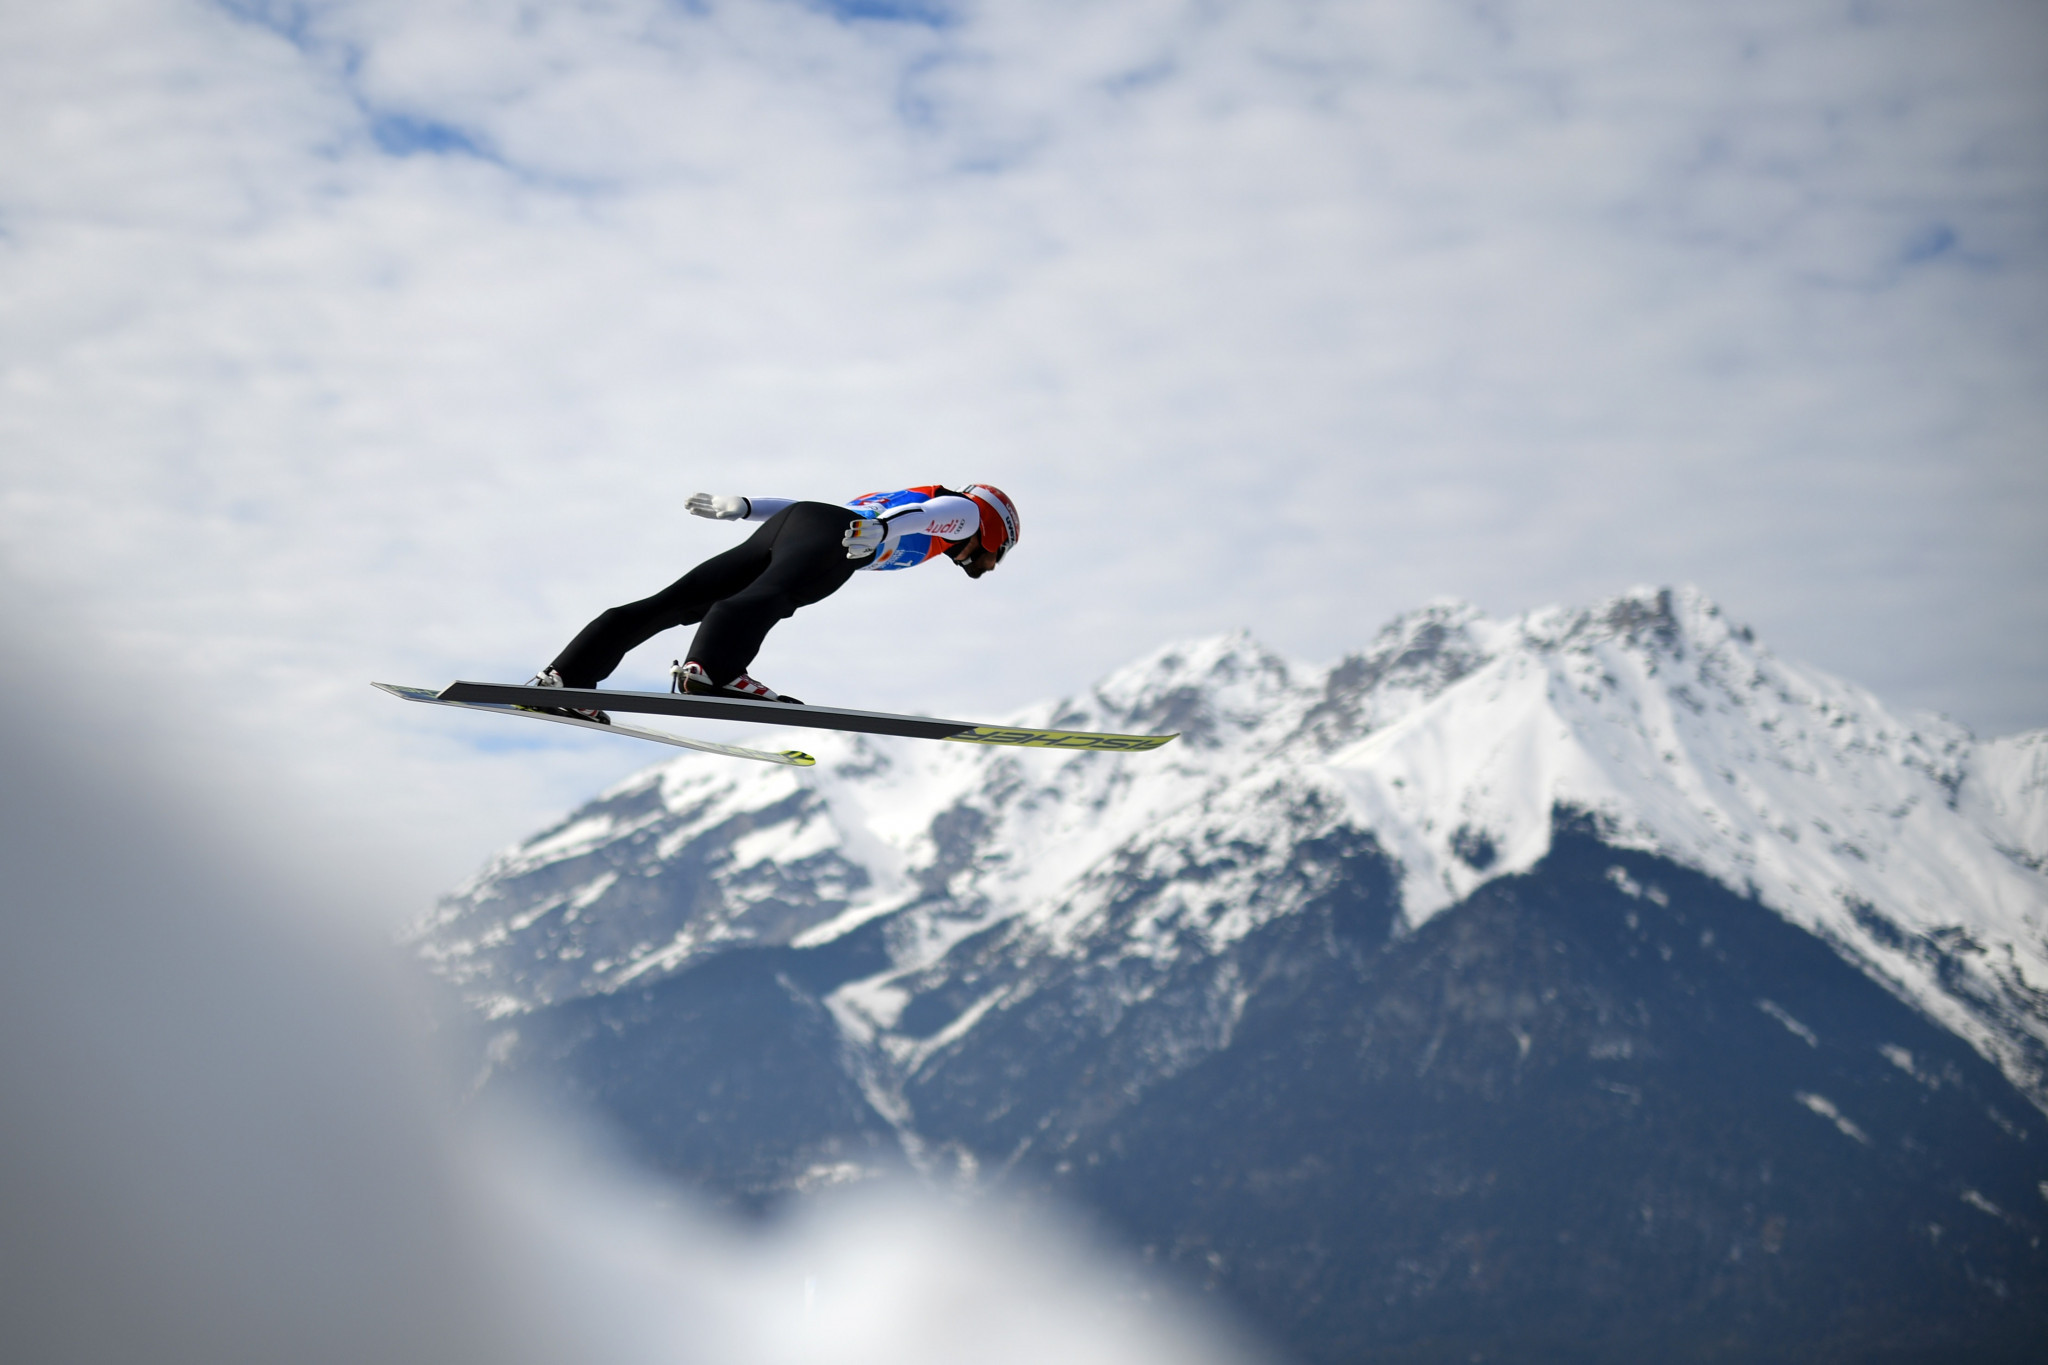 Newly crowned large hill world champion Markus Eisenbichler was in ski jumping action again ©Getty Images